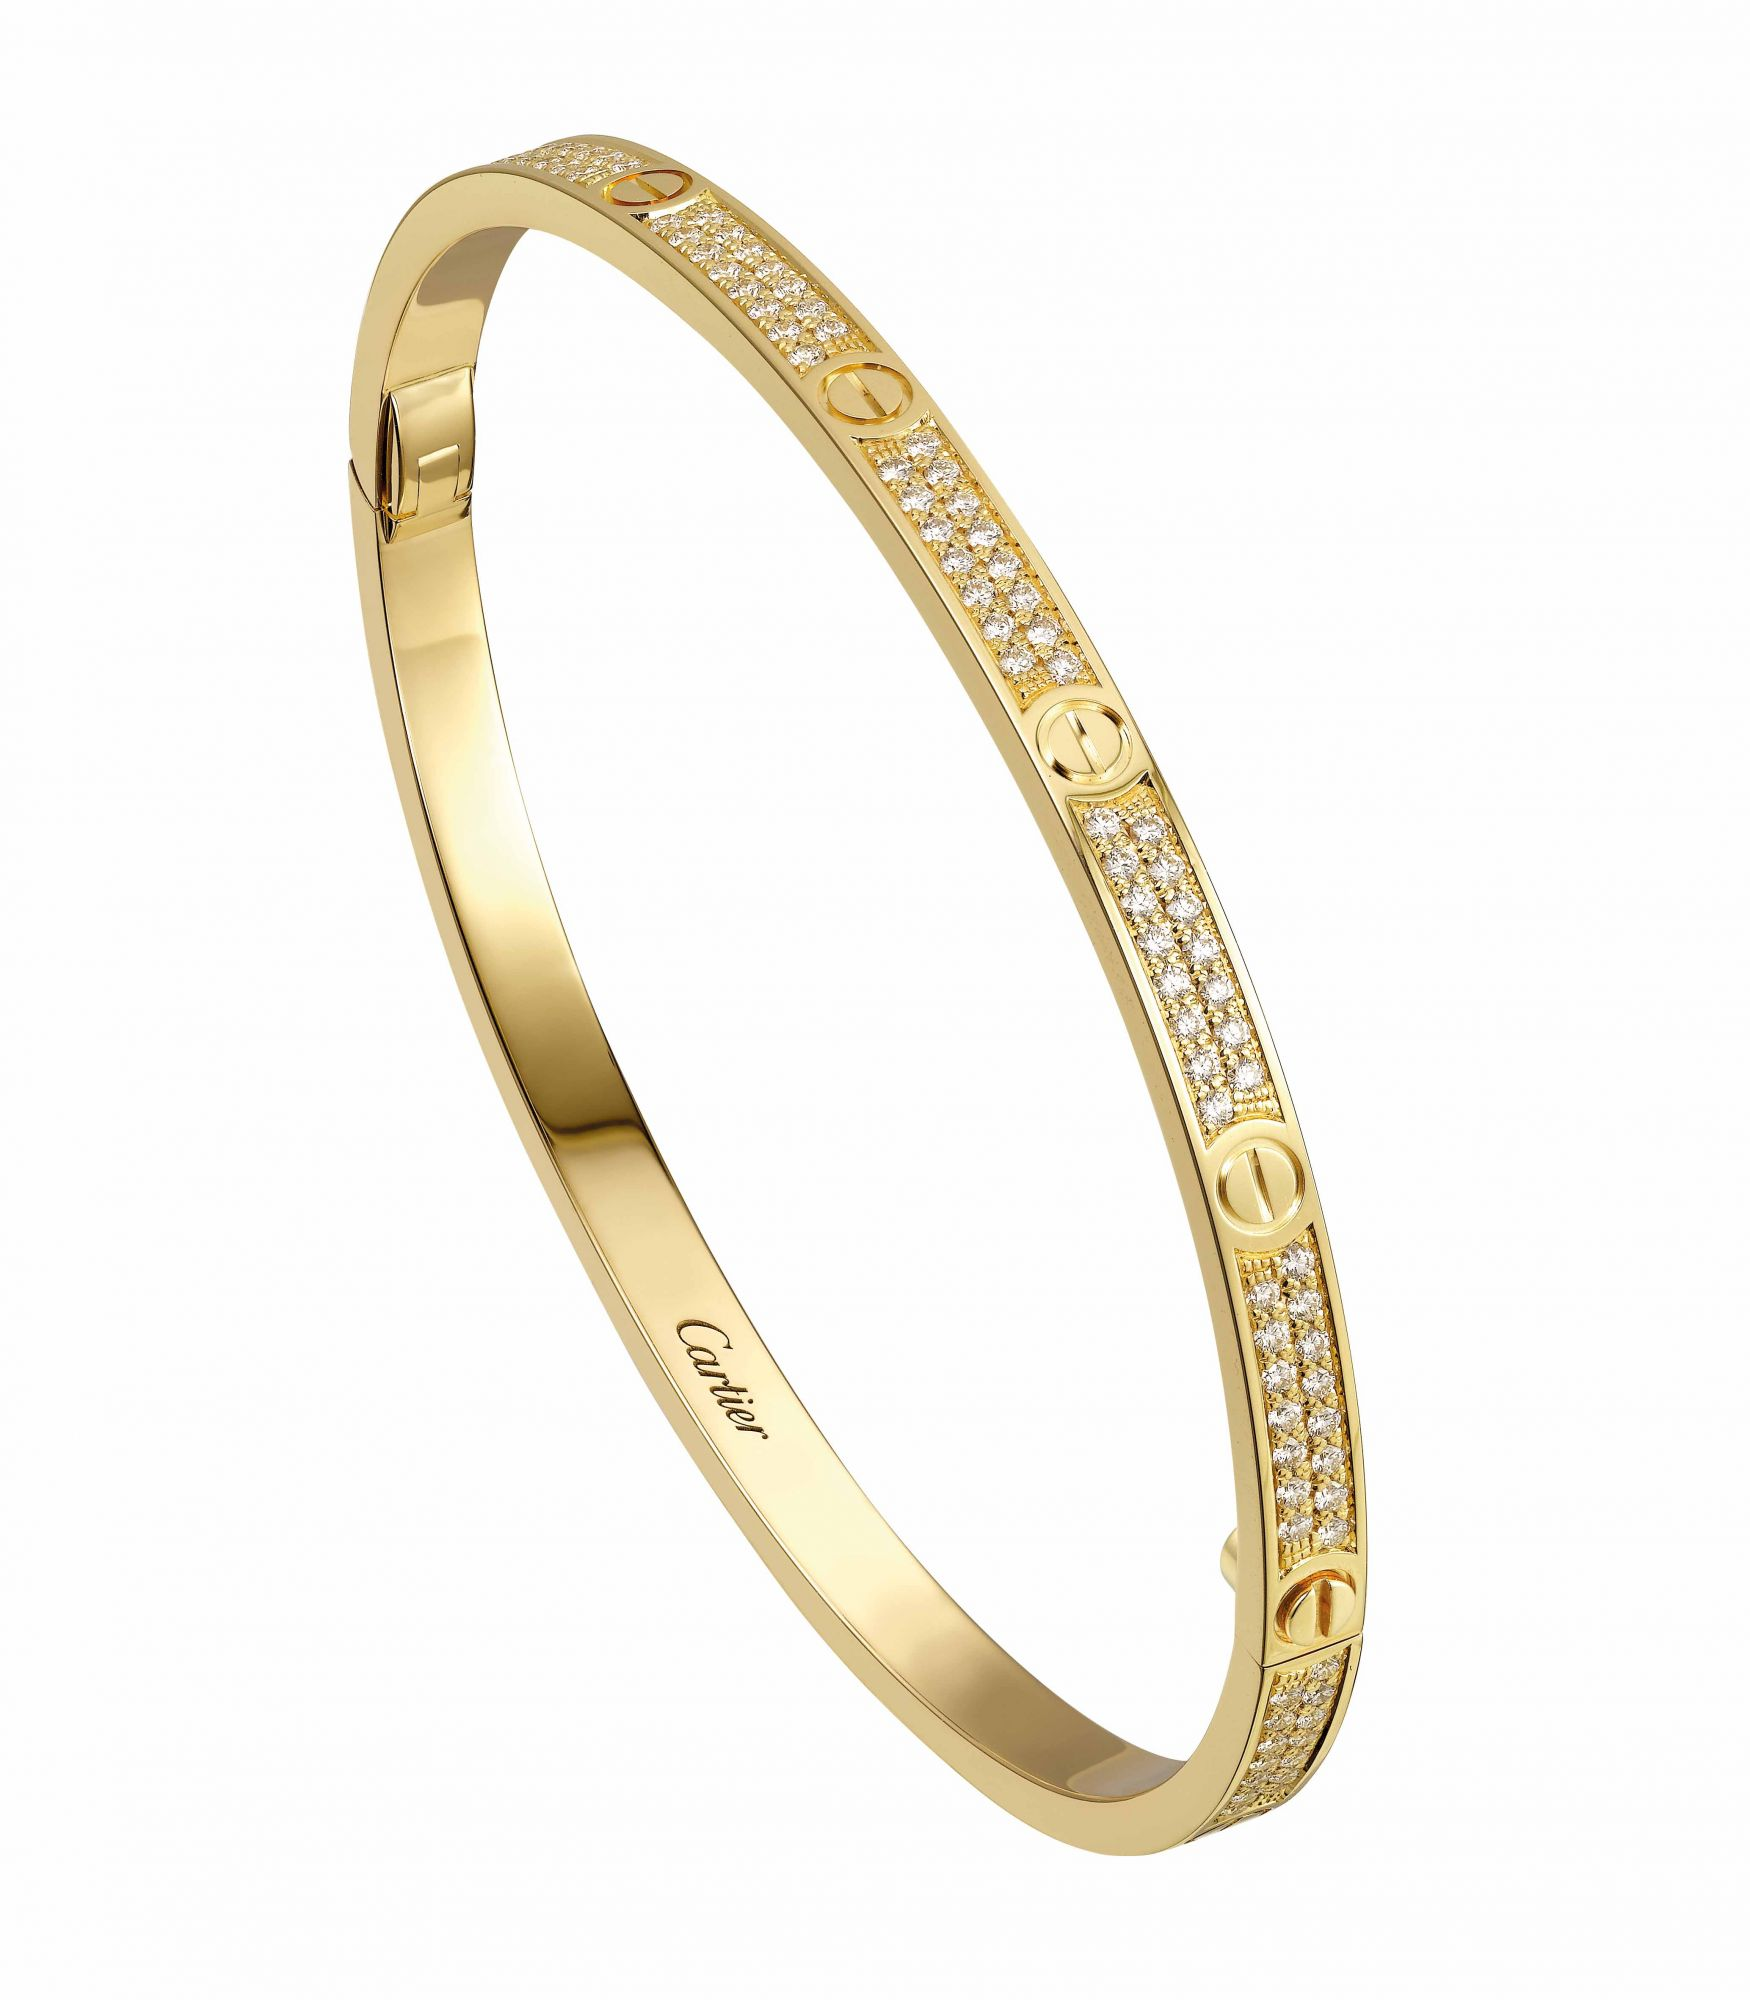 closed life this forever bracelets cartier bangles surprising screw bracelet bangle love knot gold